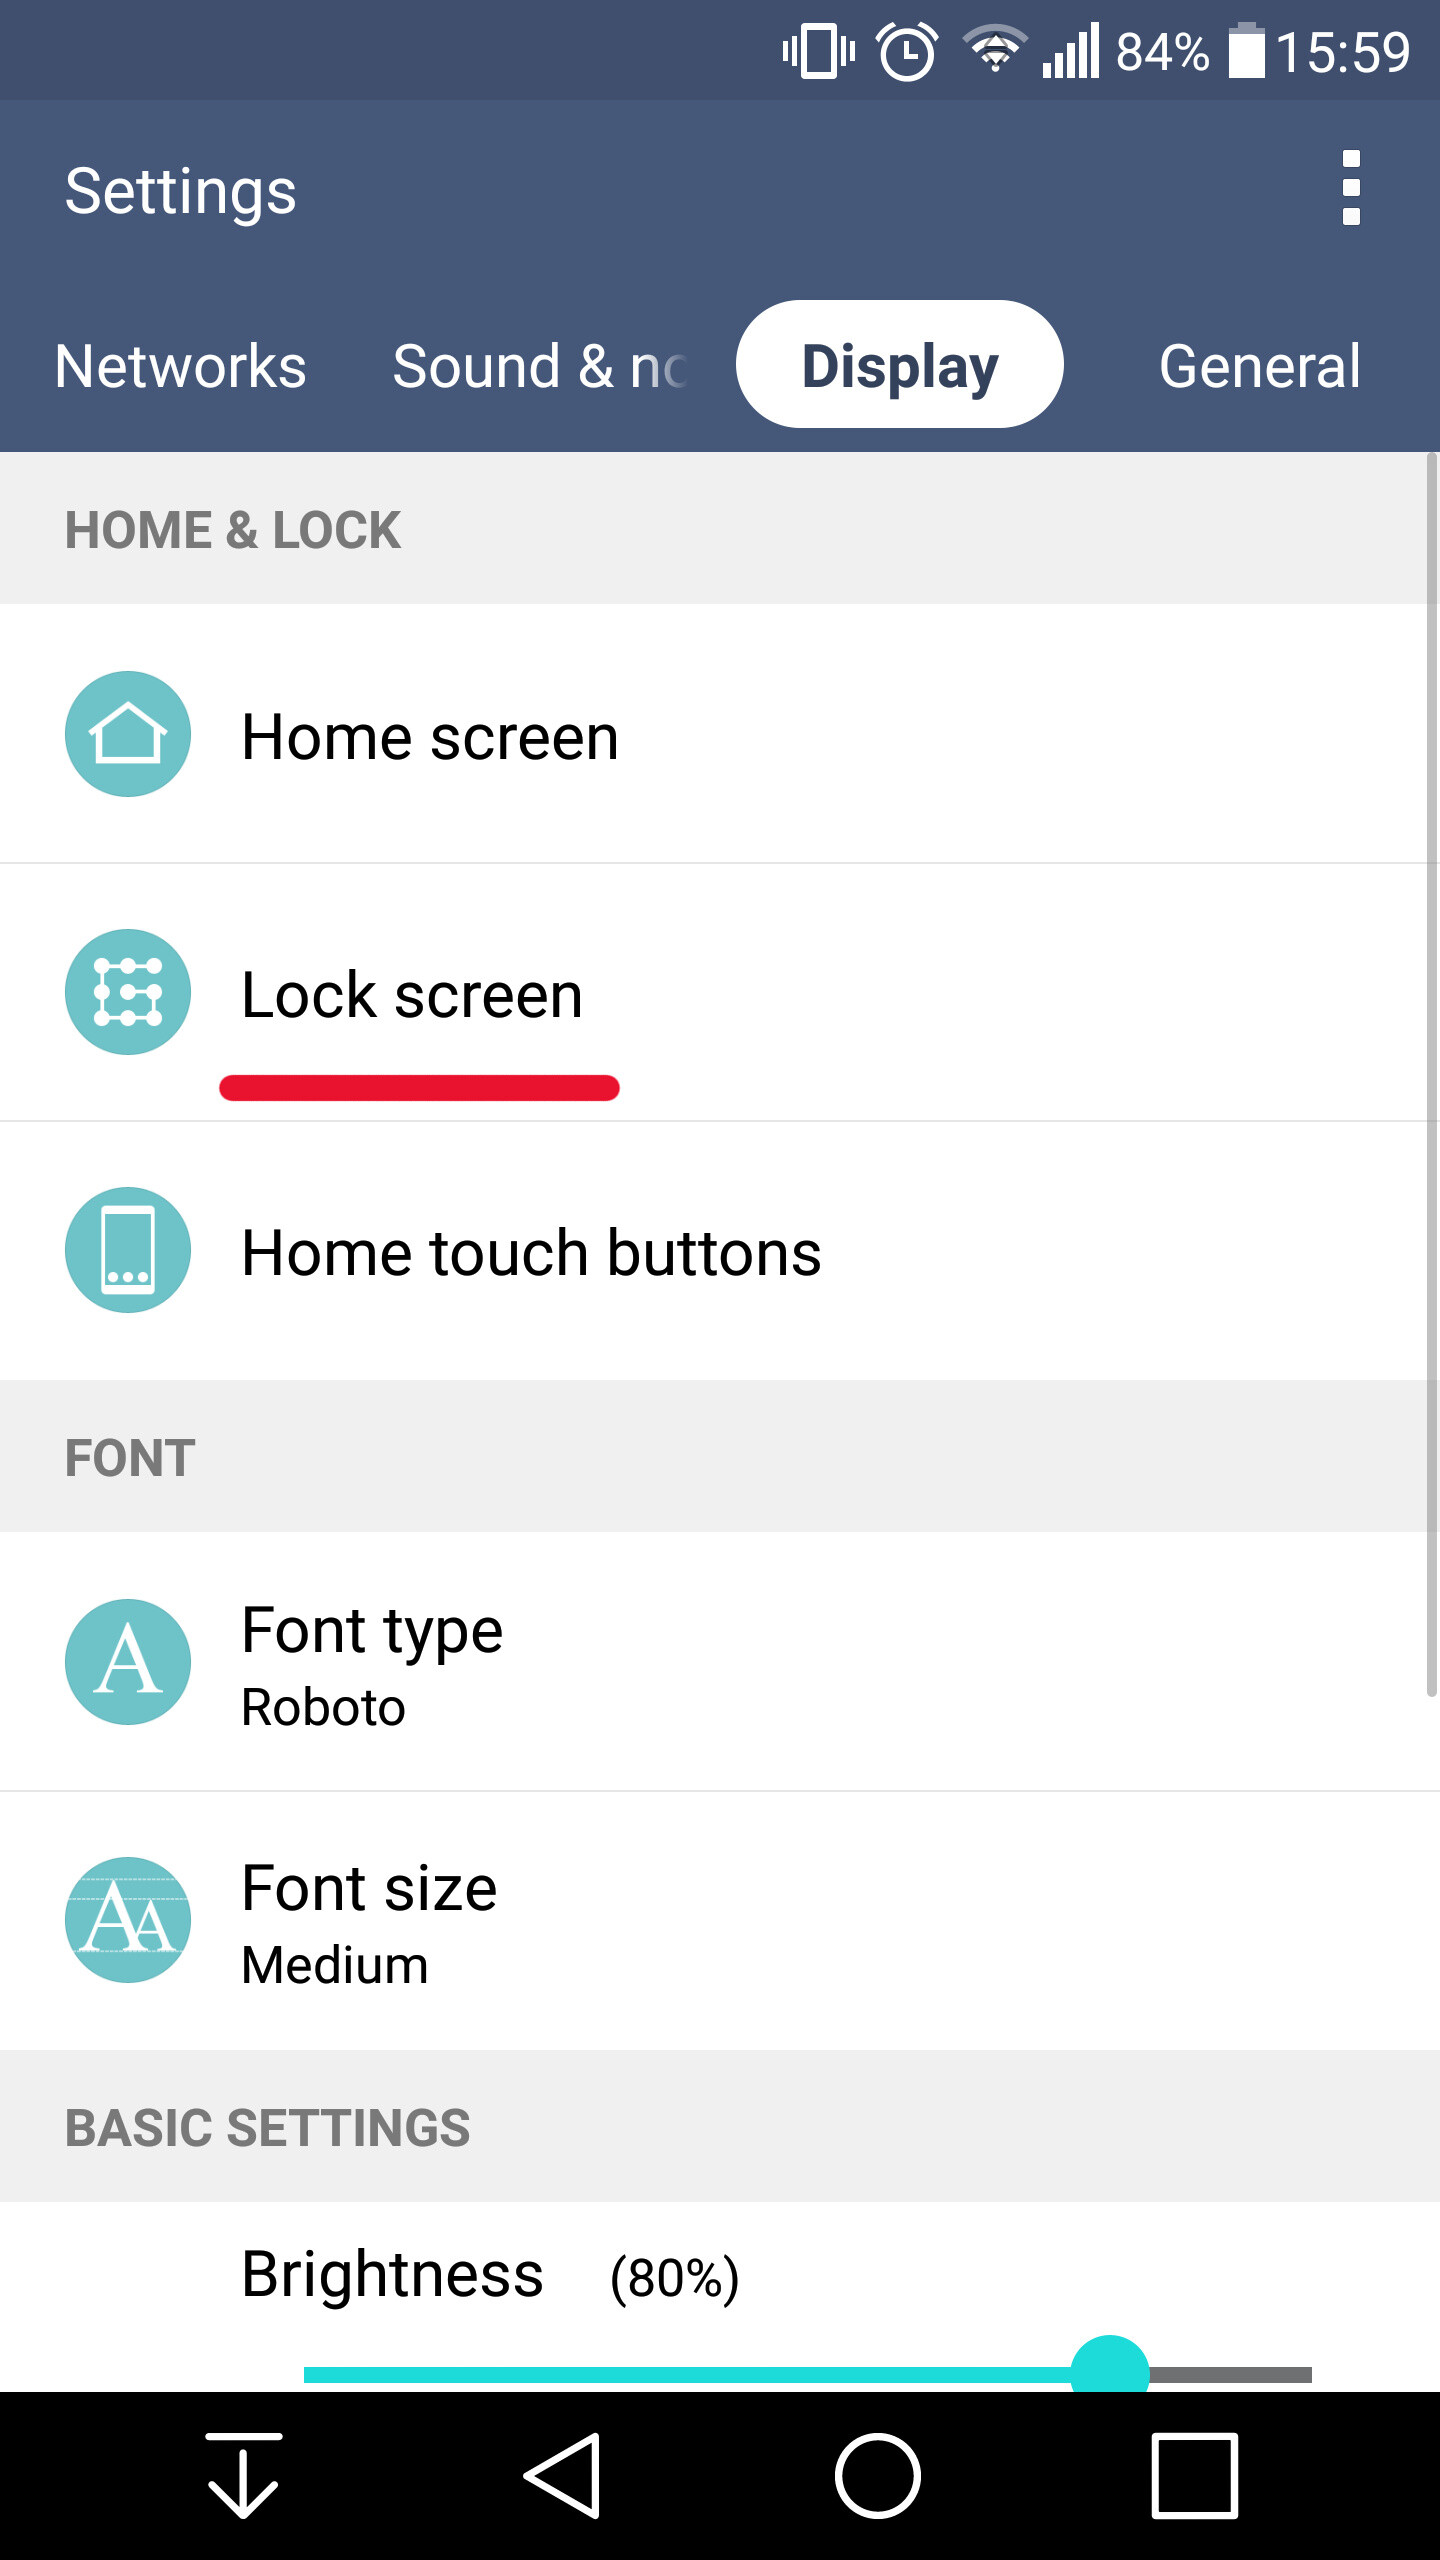 How To Enable And Setup The Knock Code Feature On The Lg G4